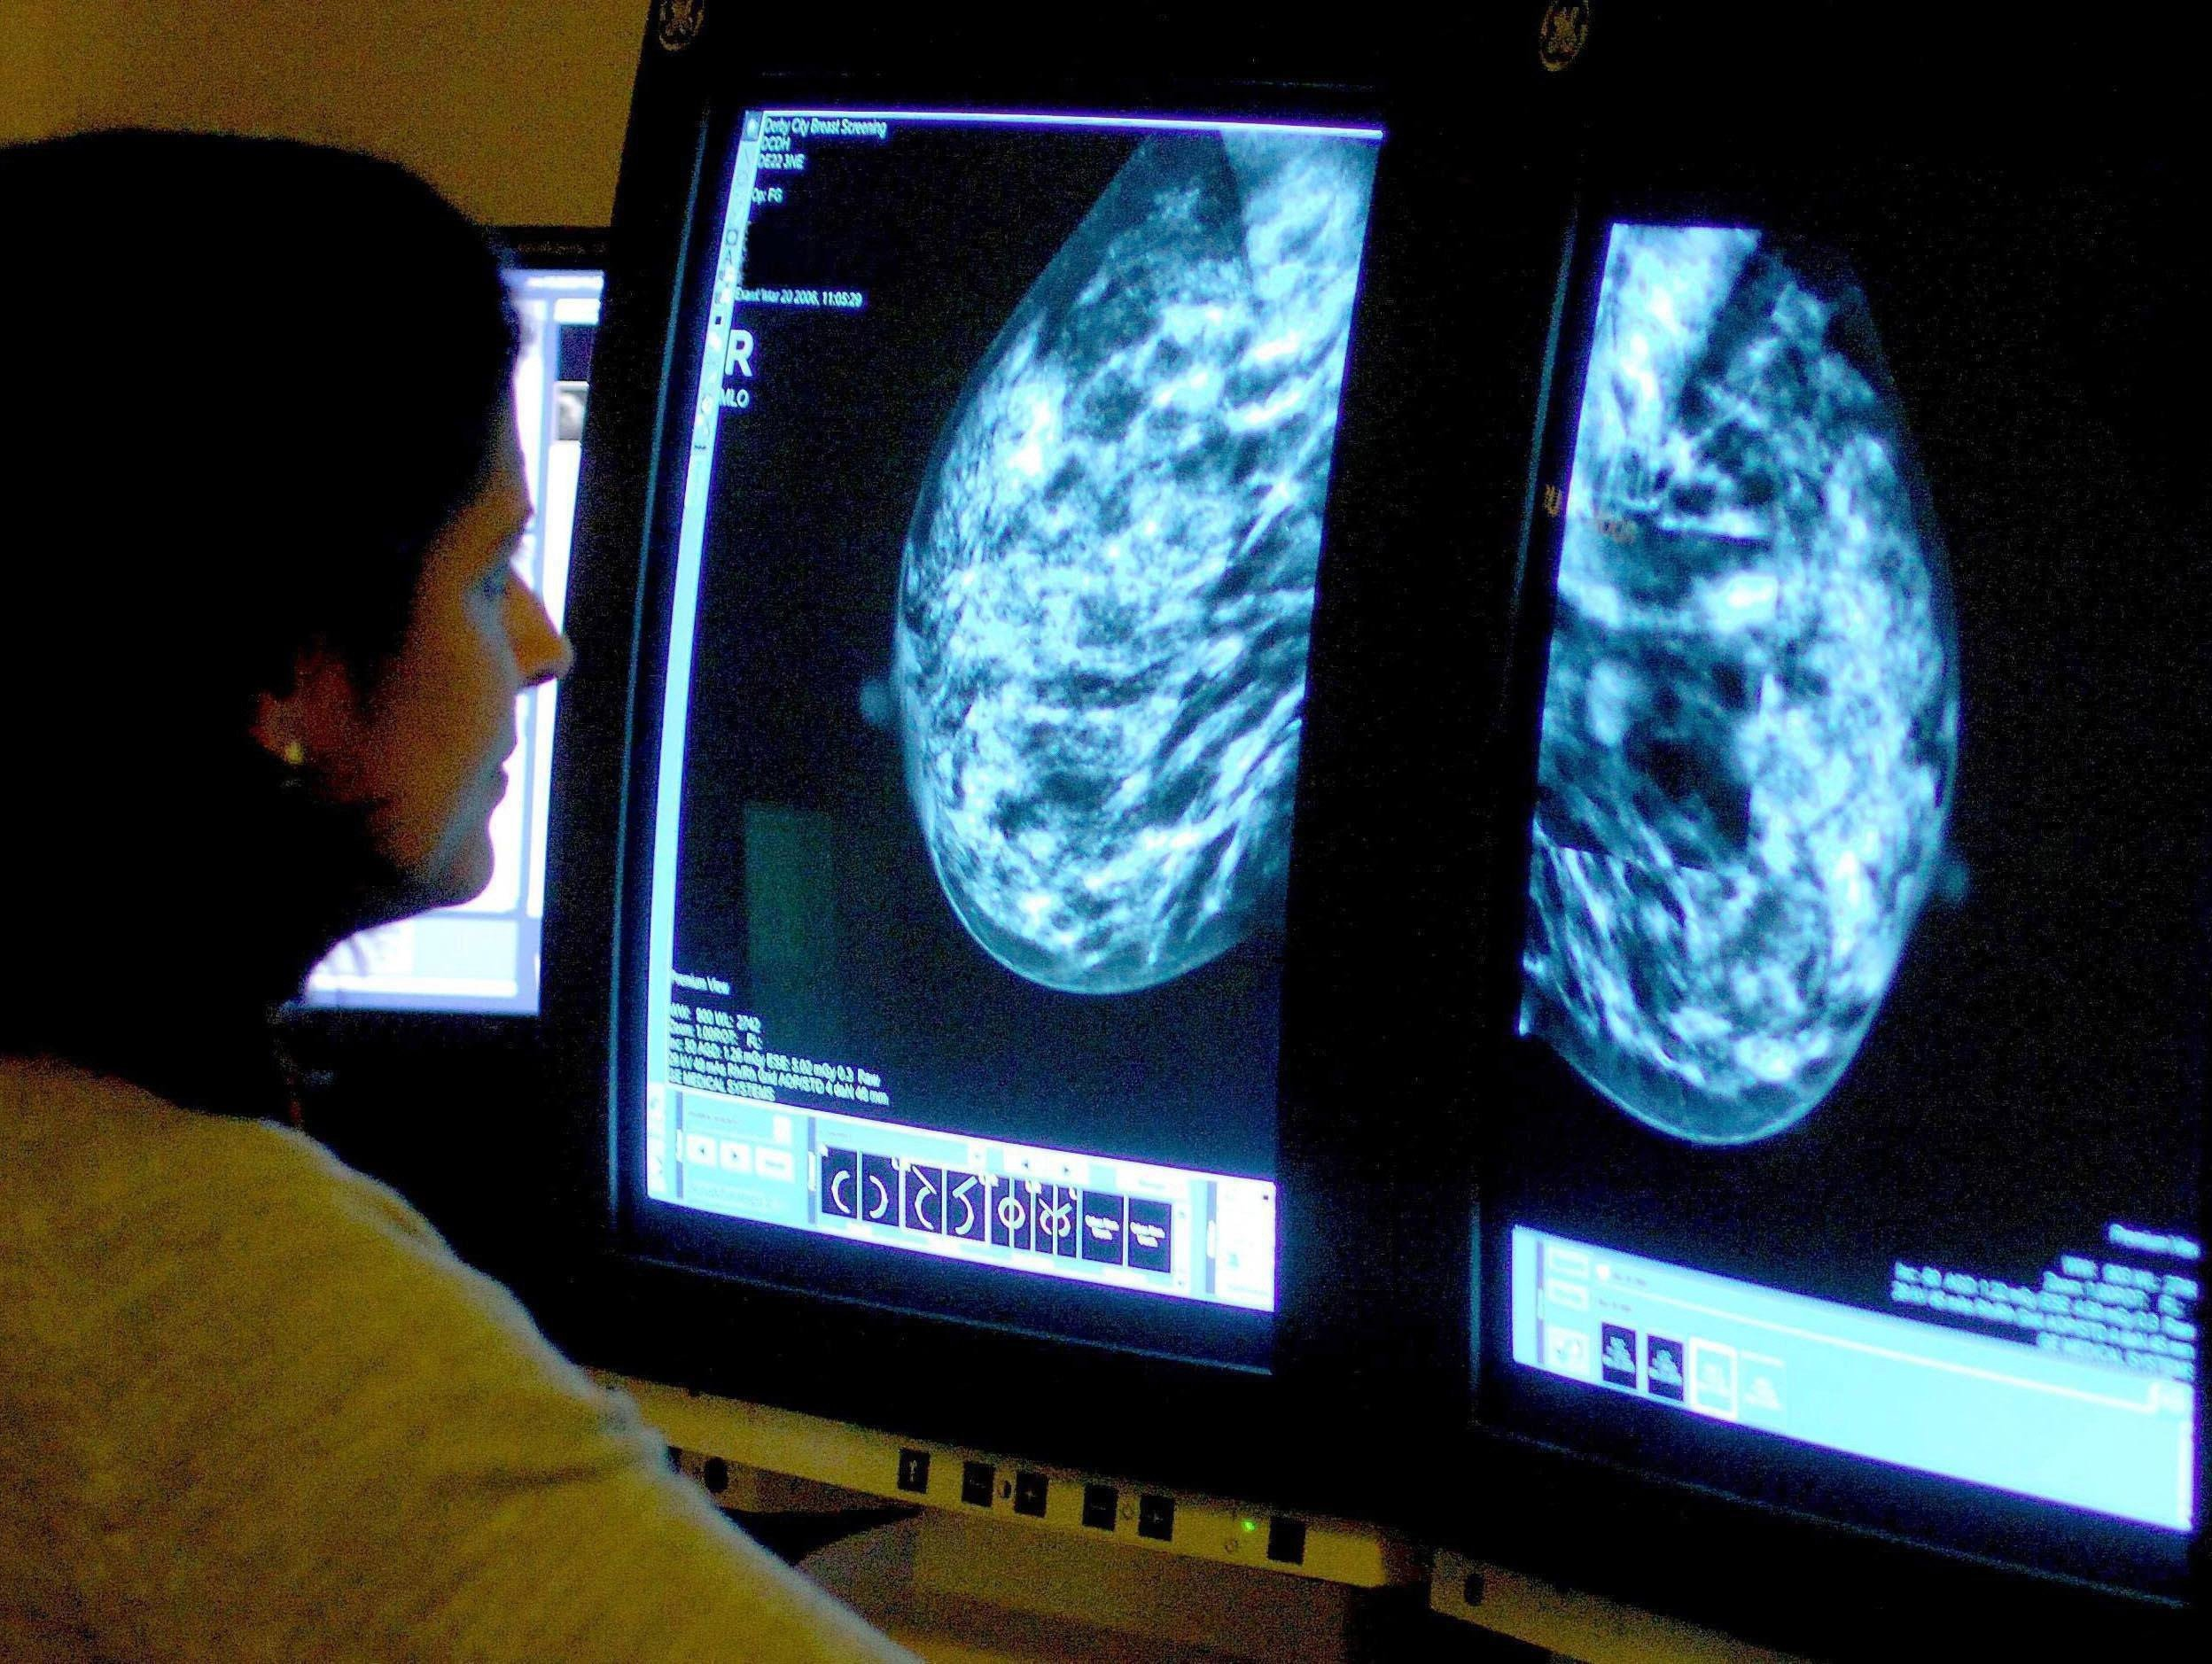 Scientists unveil 'game-changing' method to predict breast cancer risk